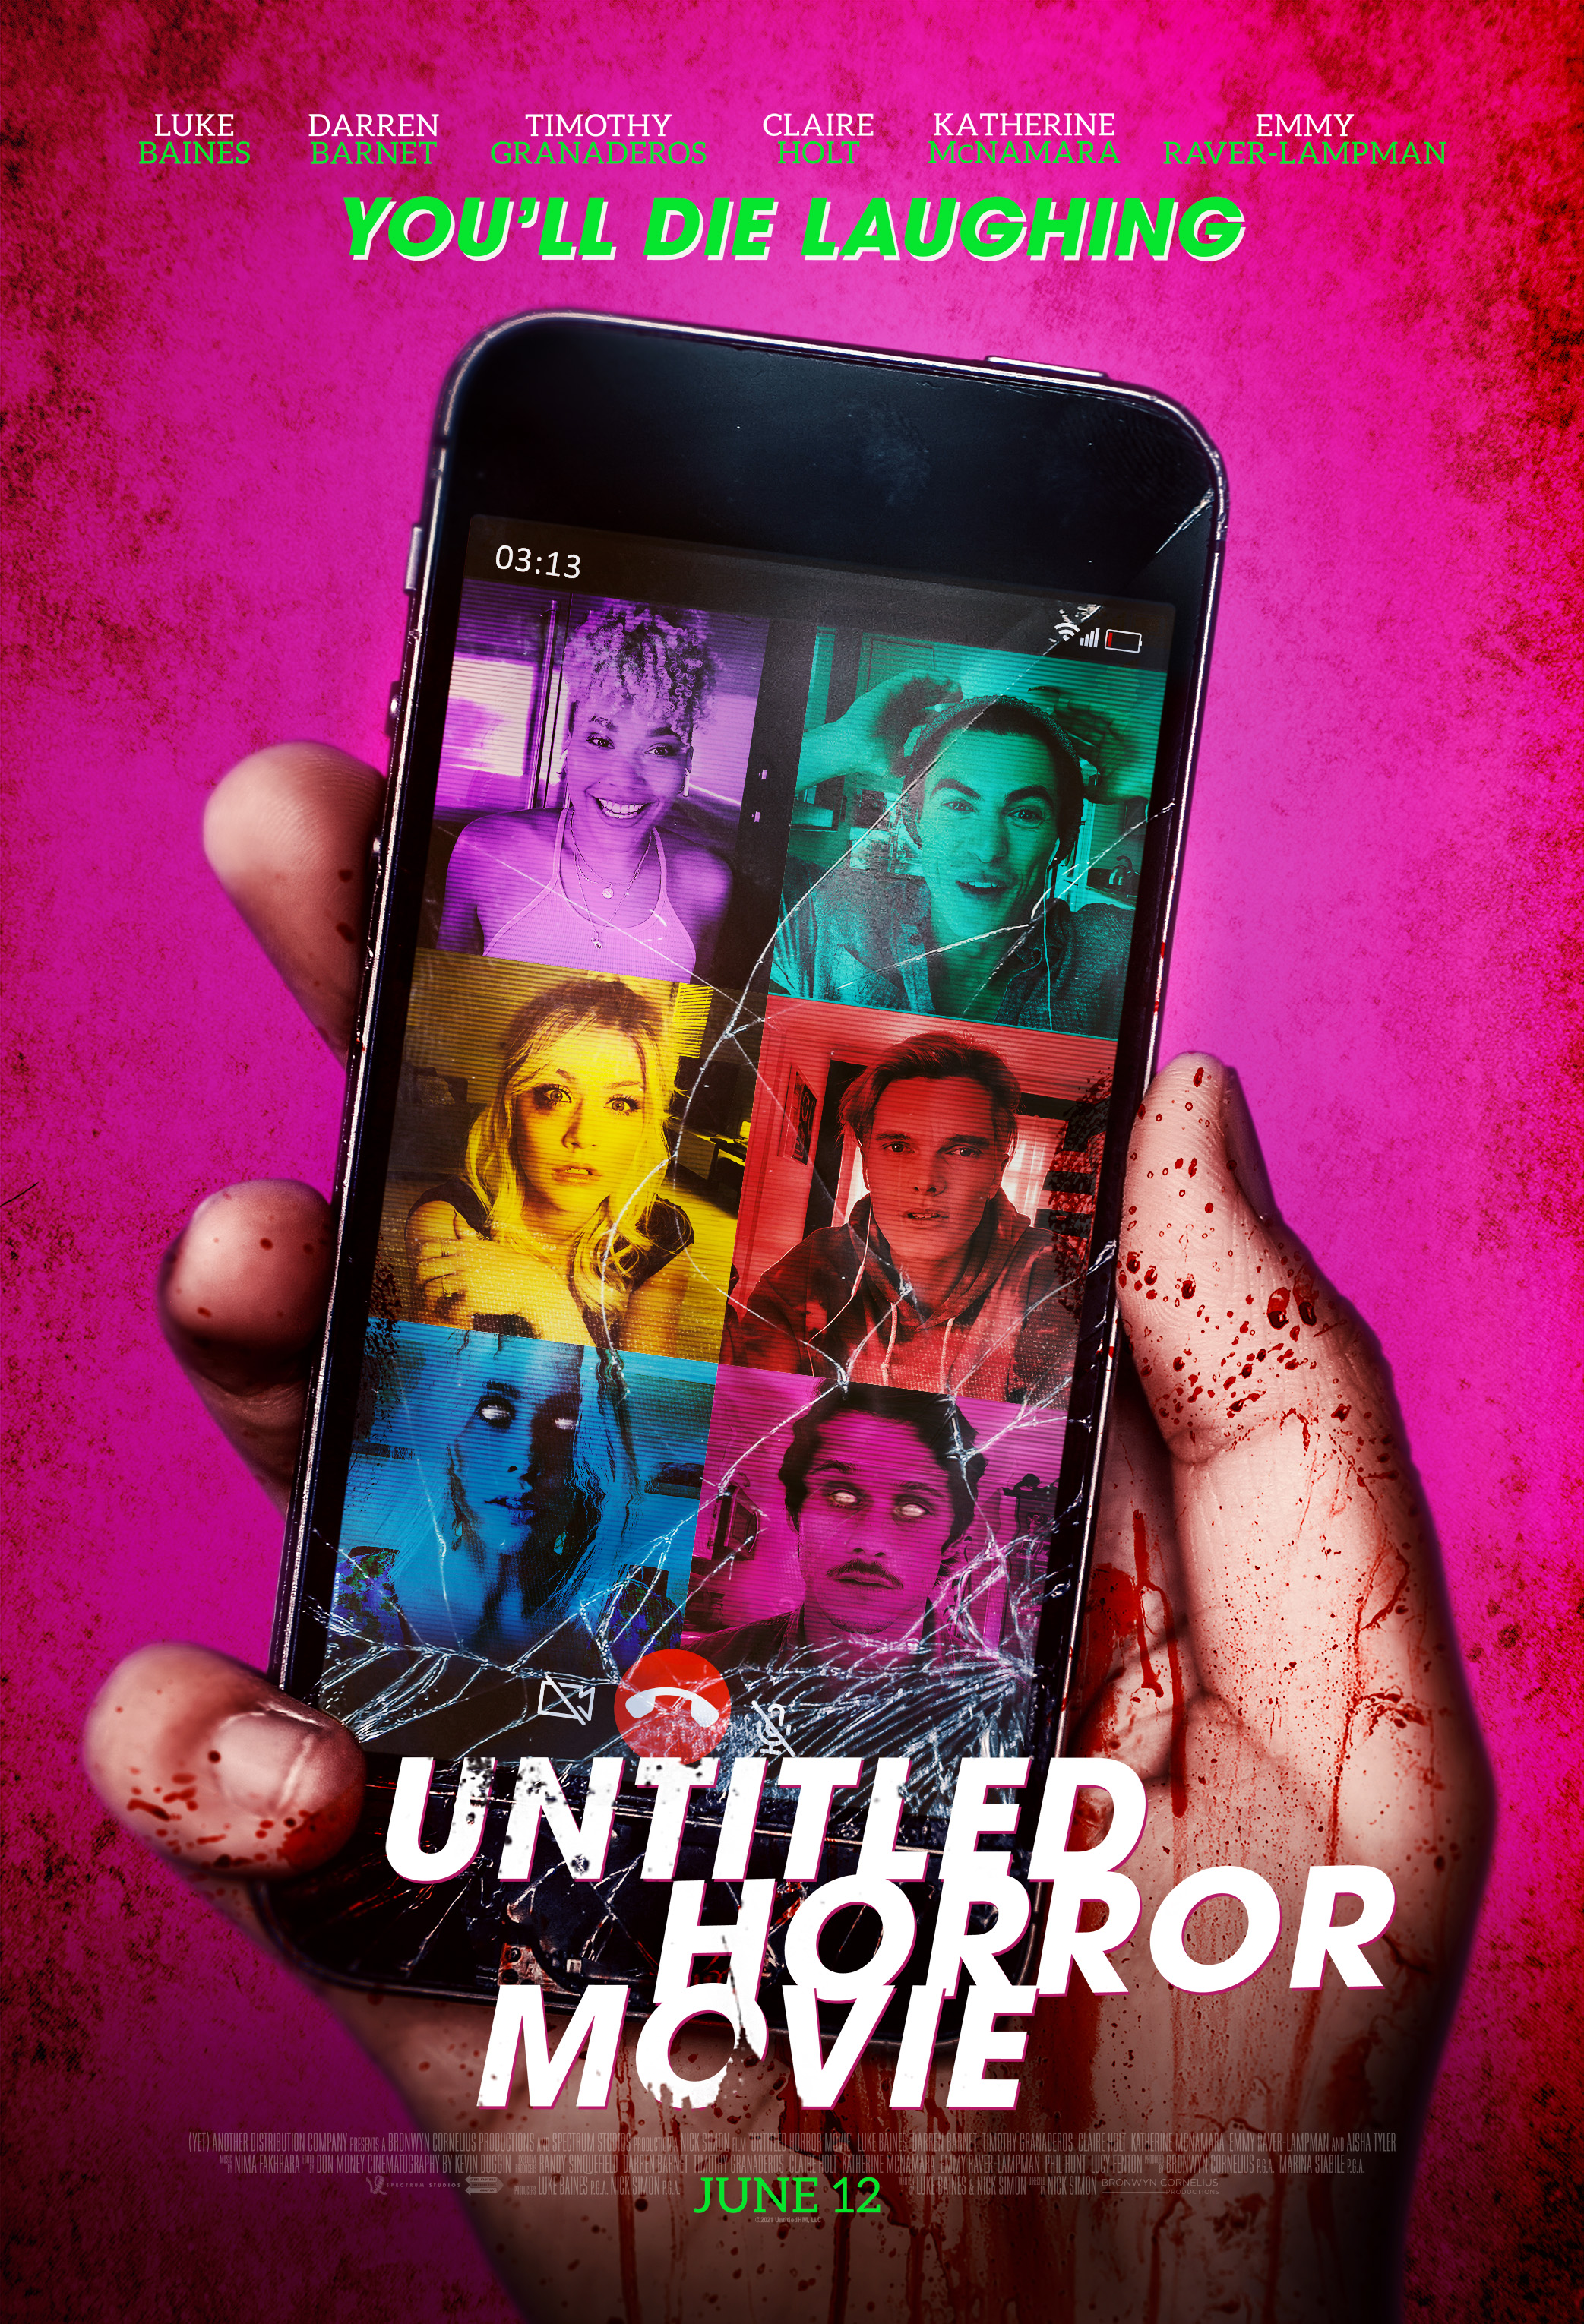 Untitled Horror Movie 2021 English 480p HDRip 300MB Download